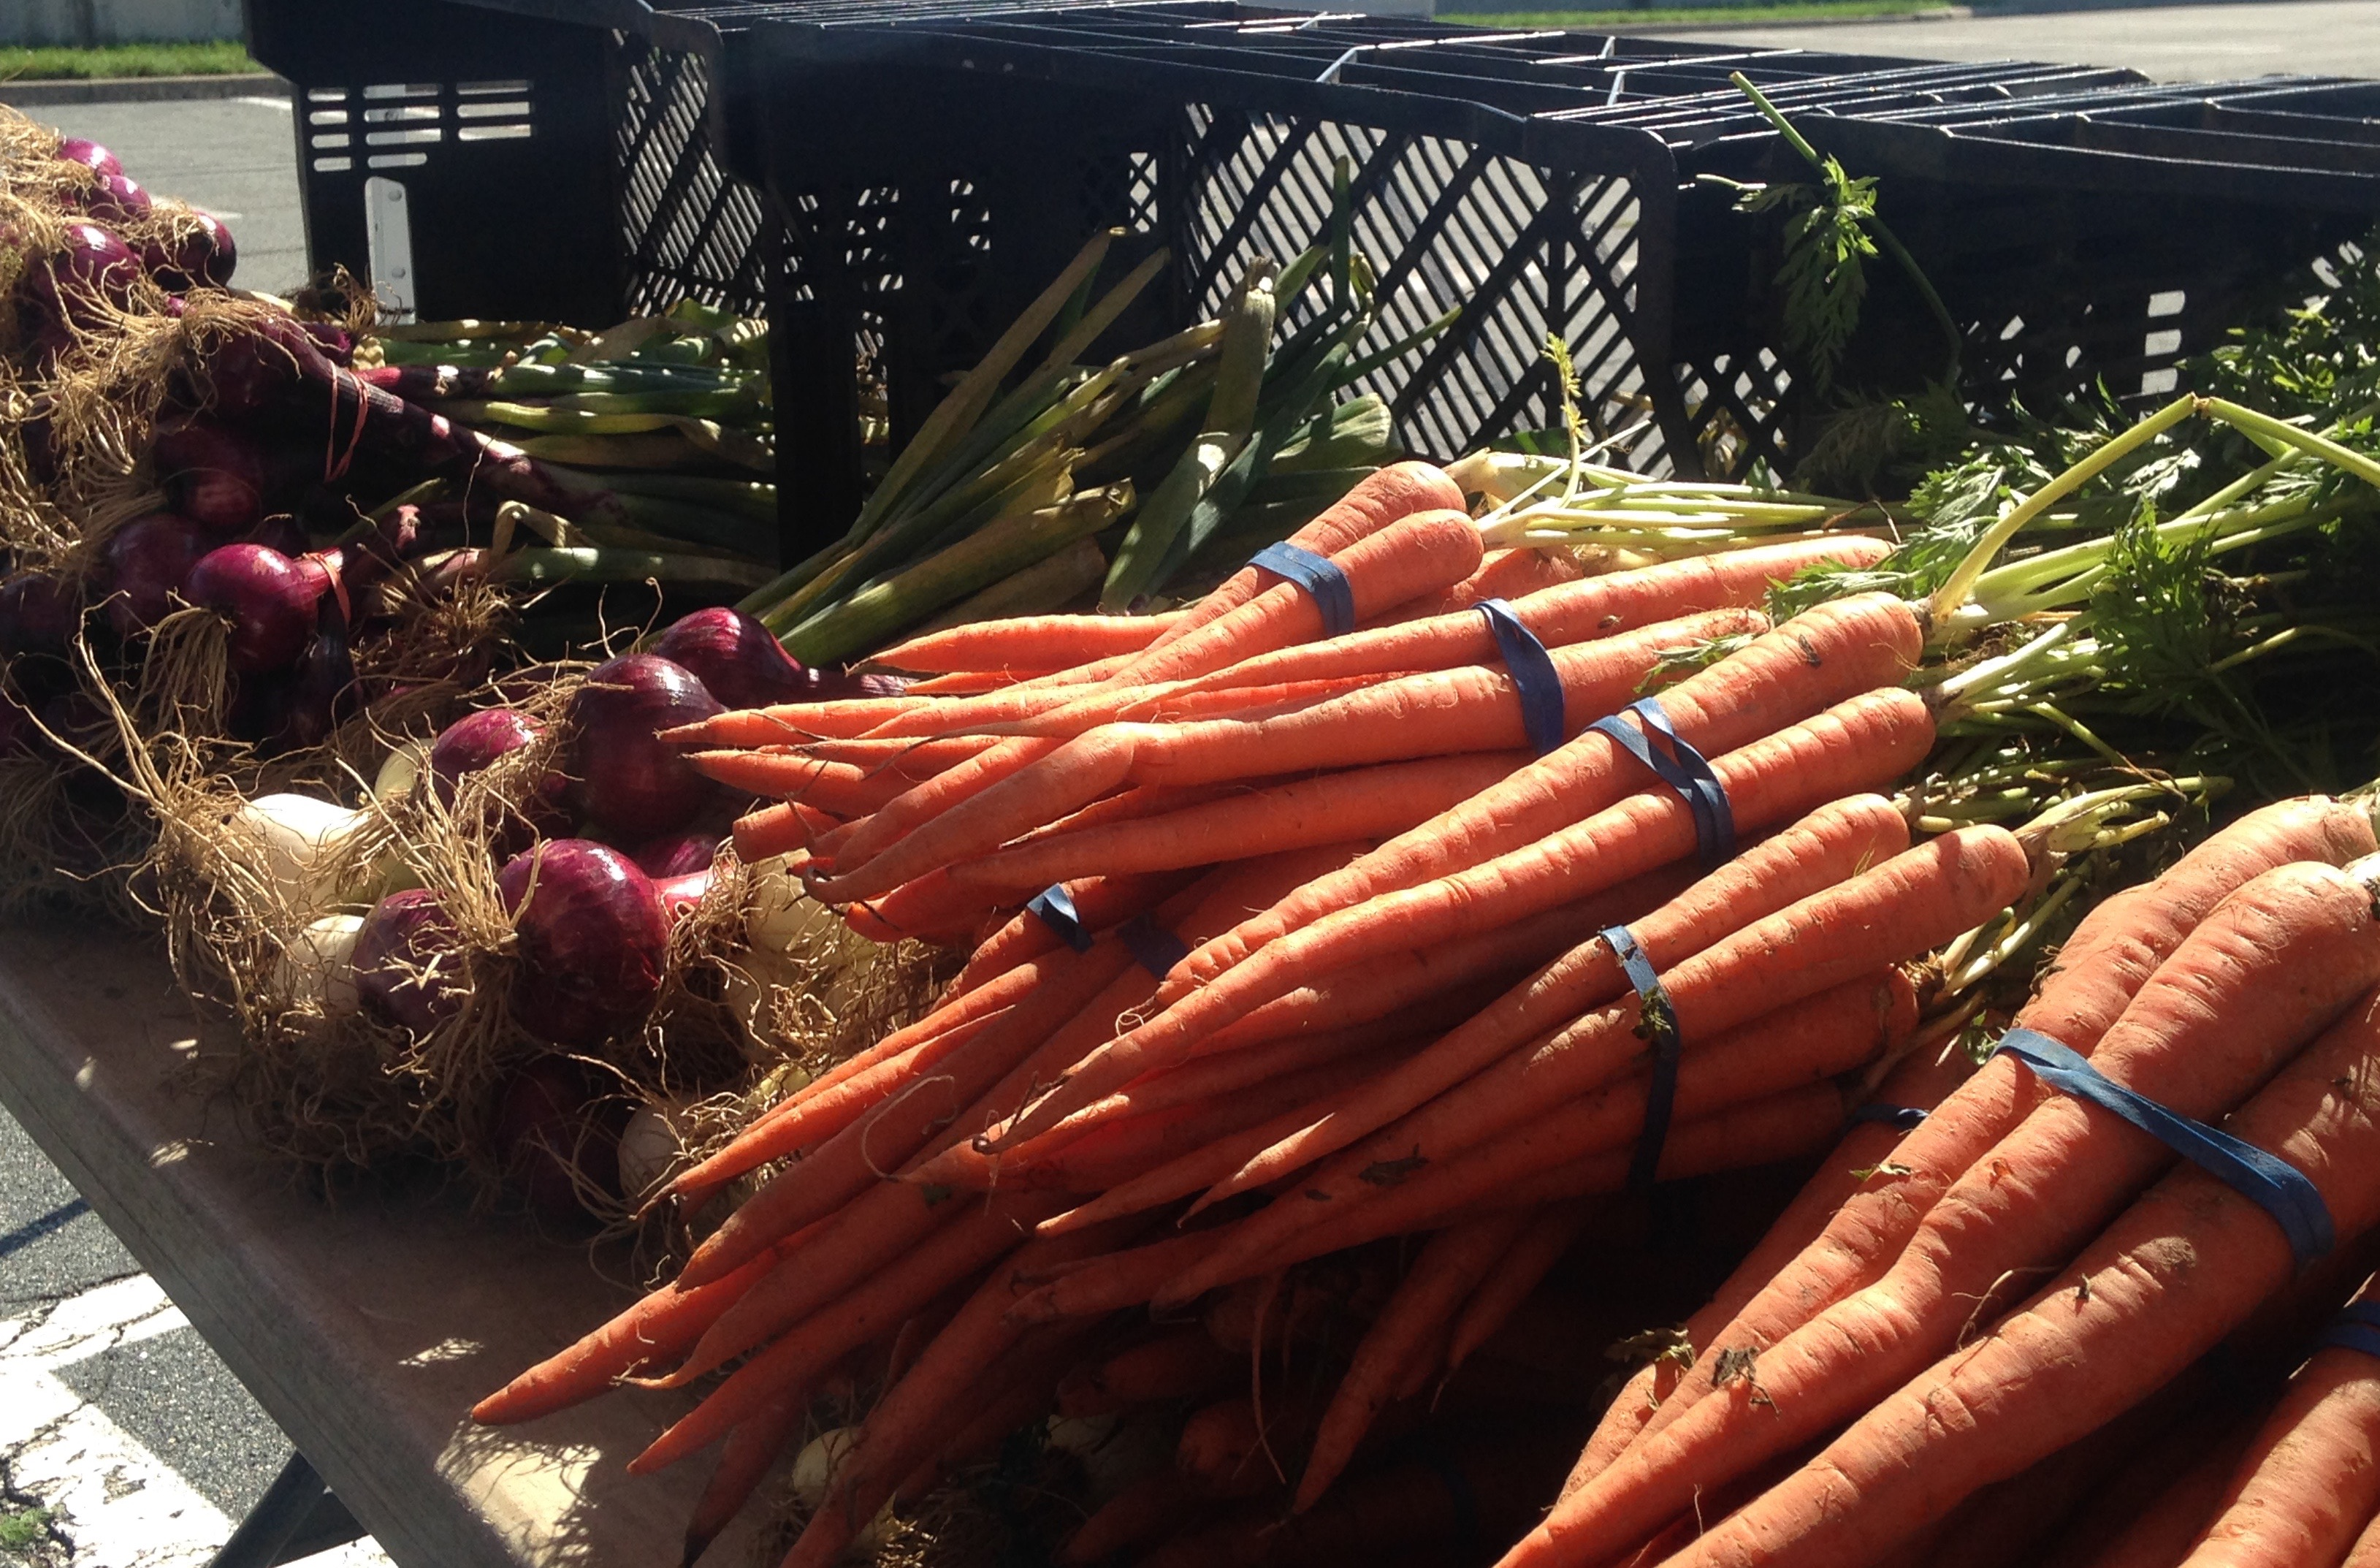 Regency Square Monday Farmers Market Features Local Vendors Every Week